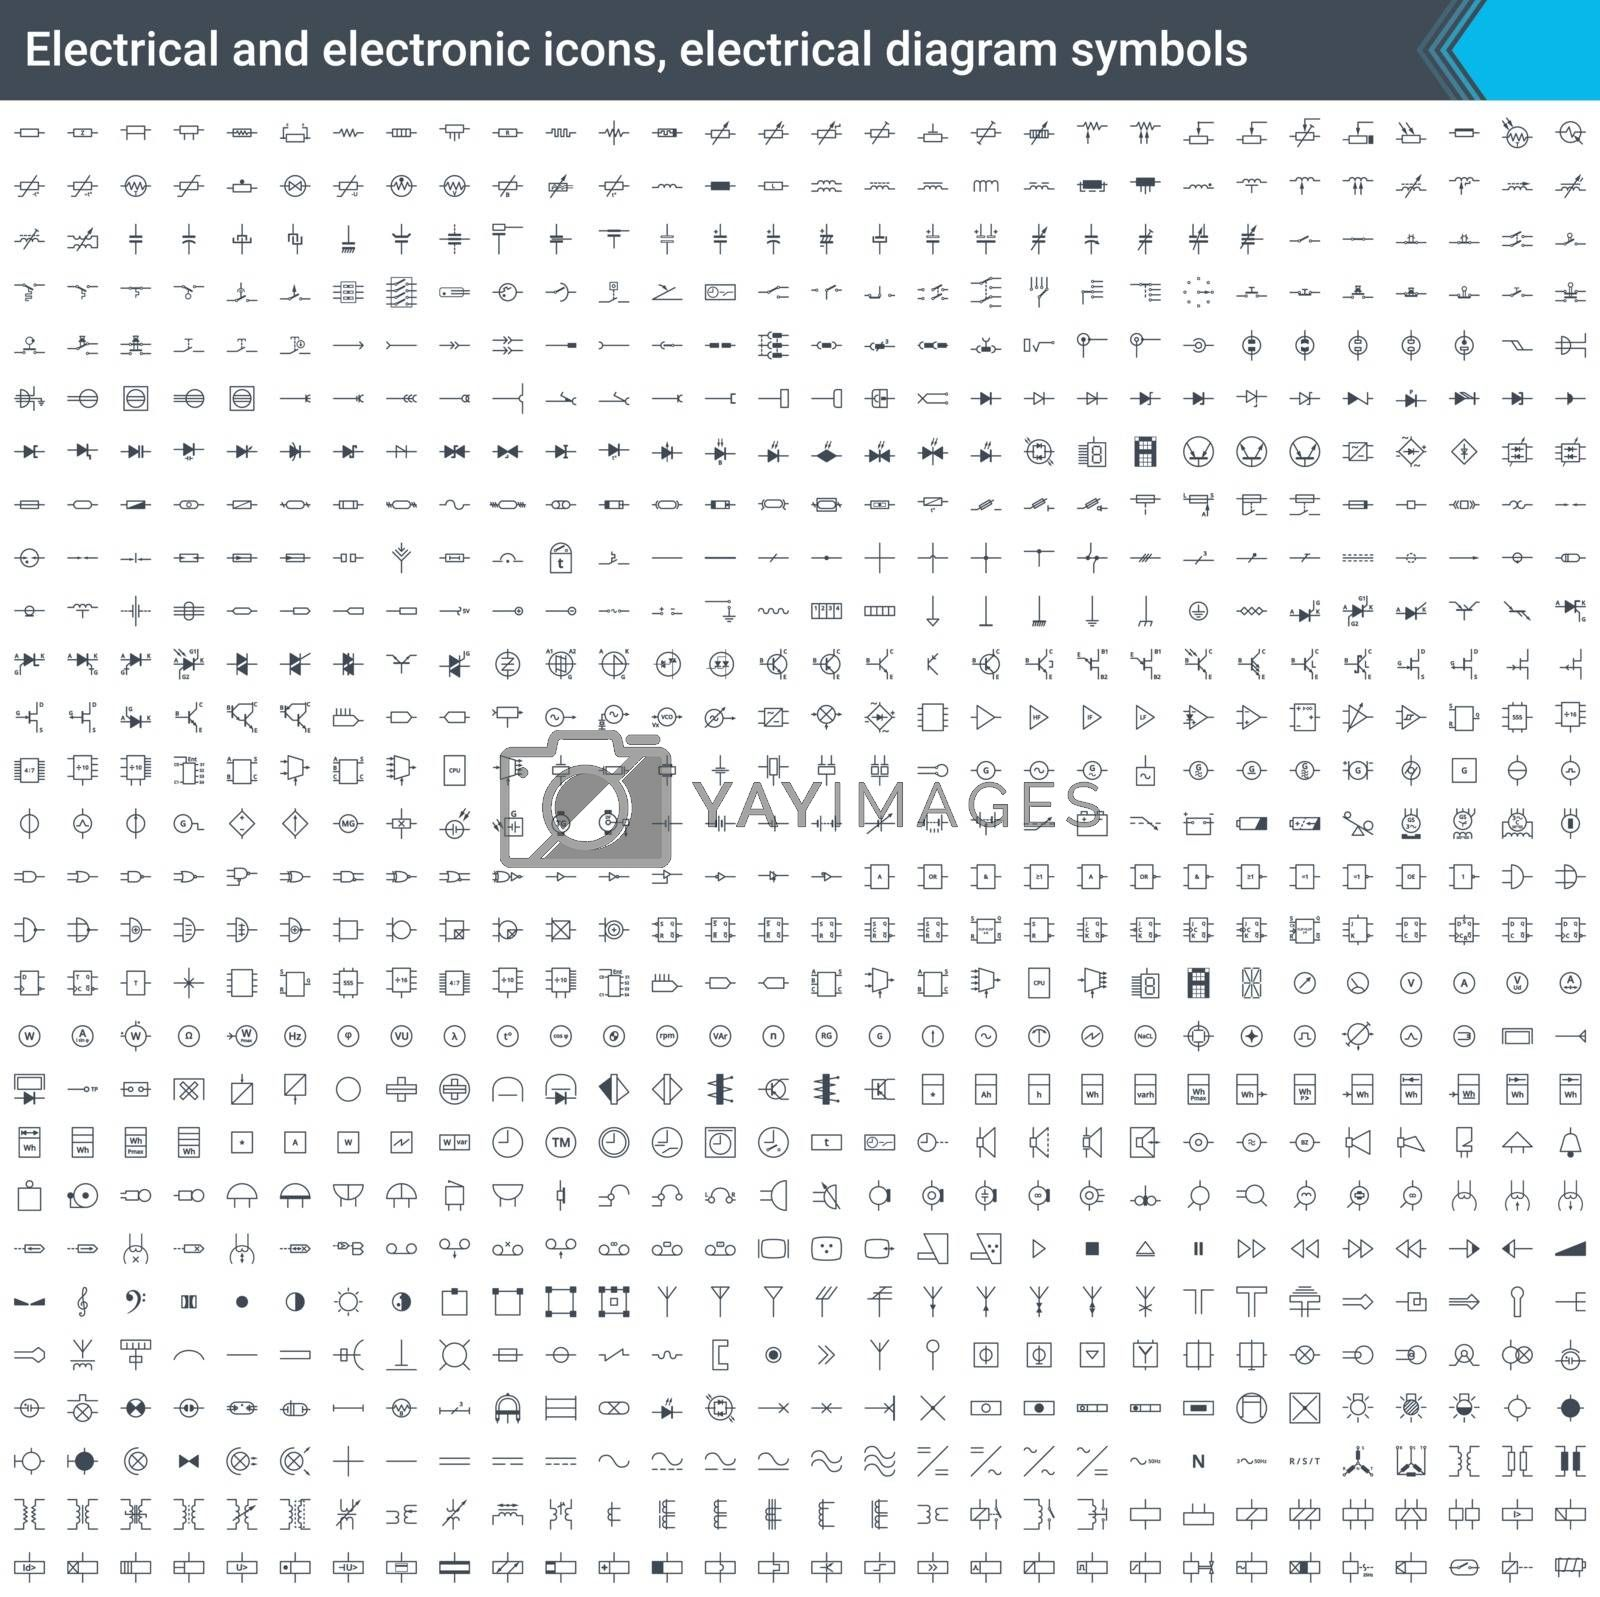 Electrical and electronic icons, electrical diagram symbols. Circuit diagram elements. Stoke, simple and thin vector icons isolated on white background.